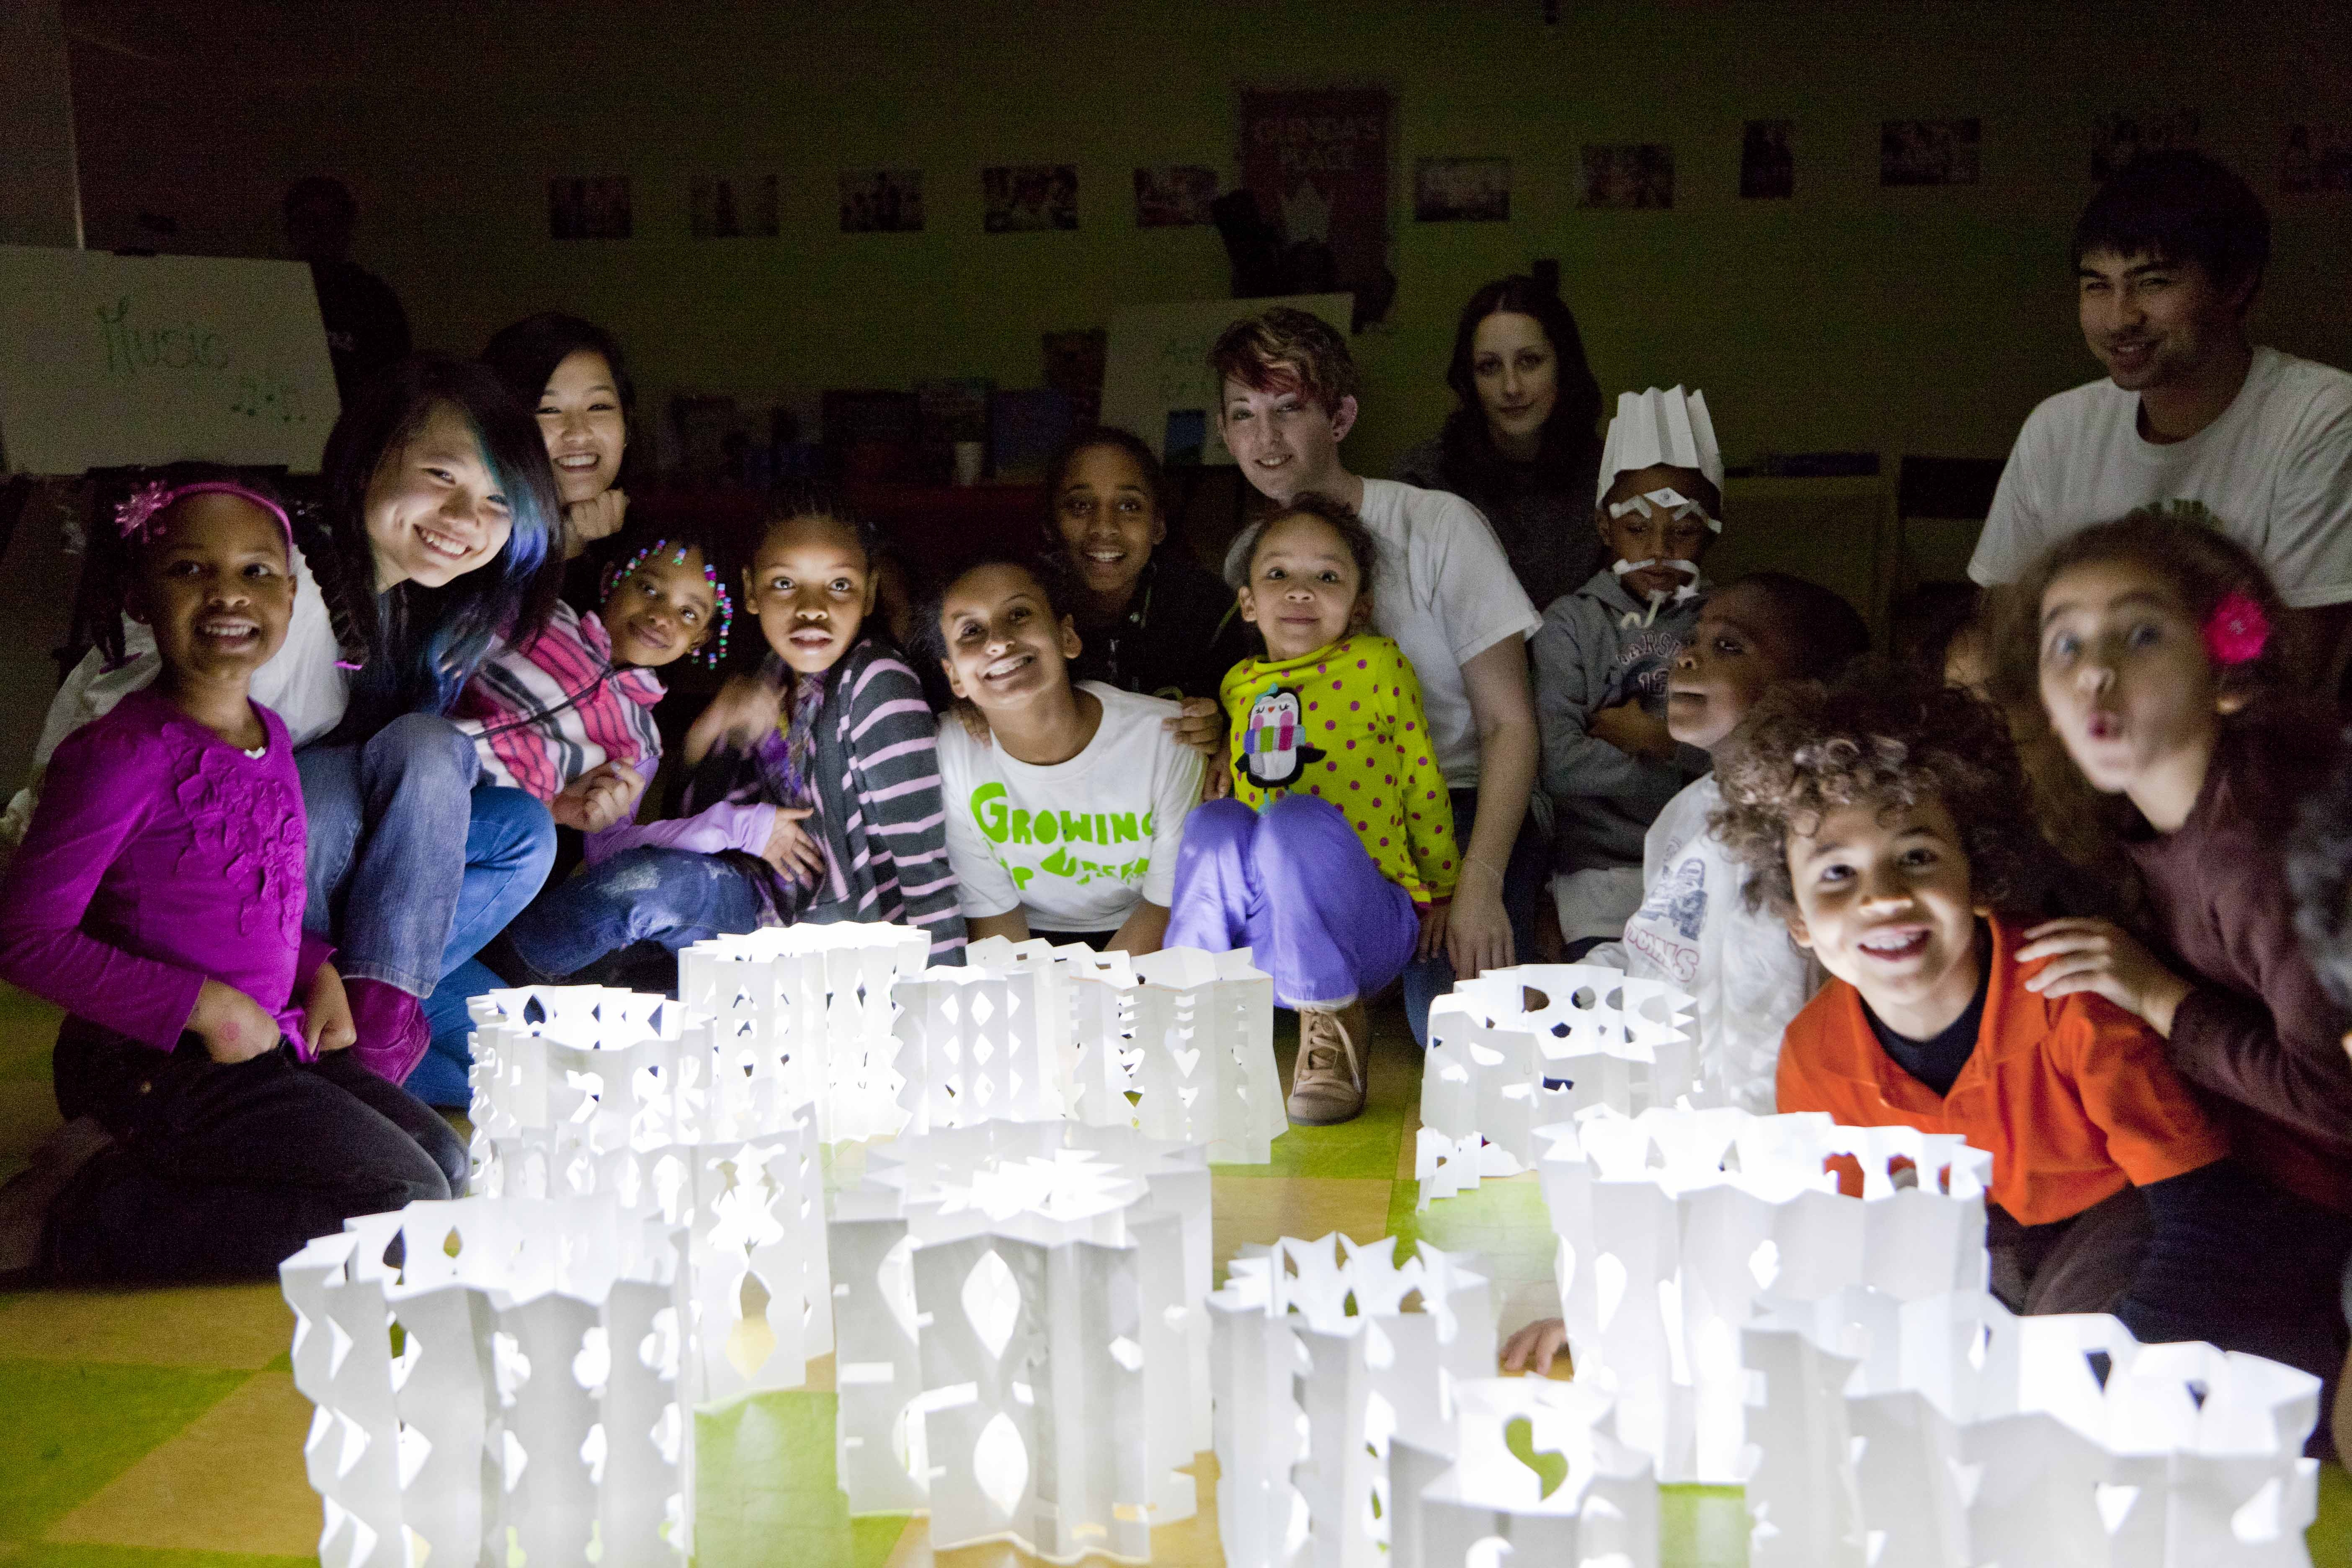 The importance of teaching children about architecture